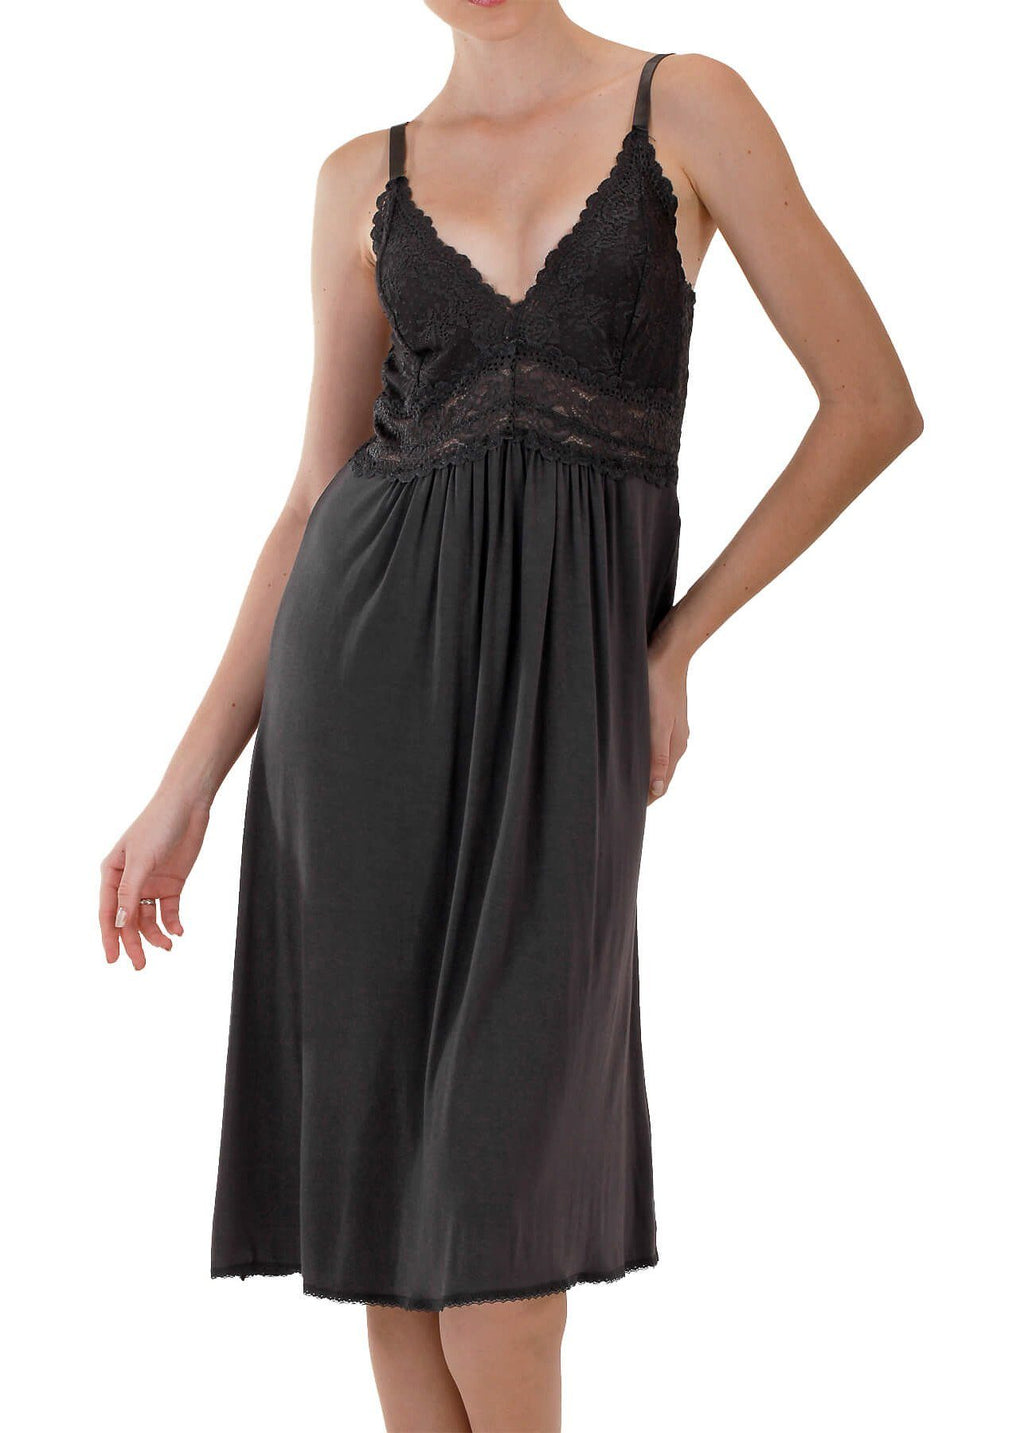 Bliss Knit Nightgown - Black Mystique Intimates